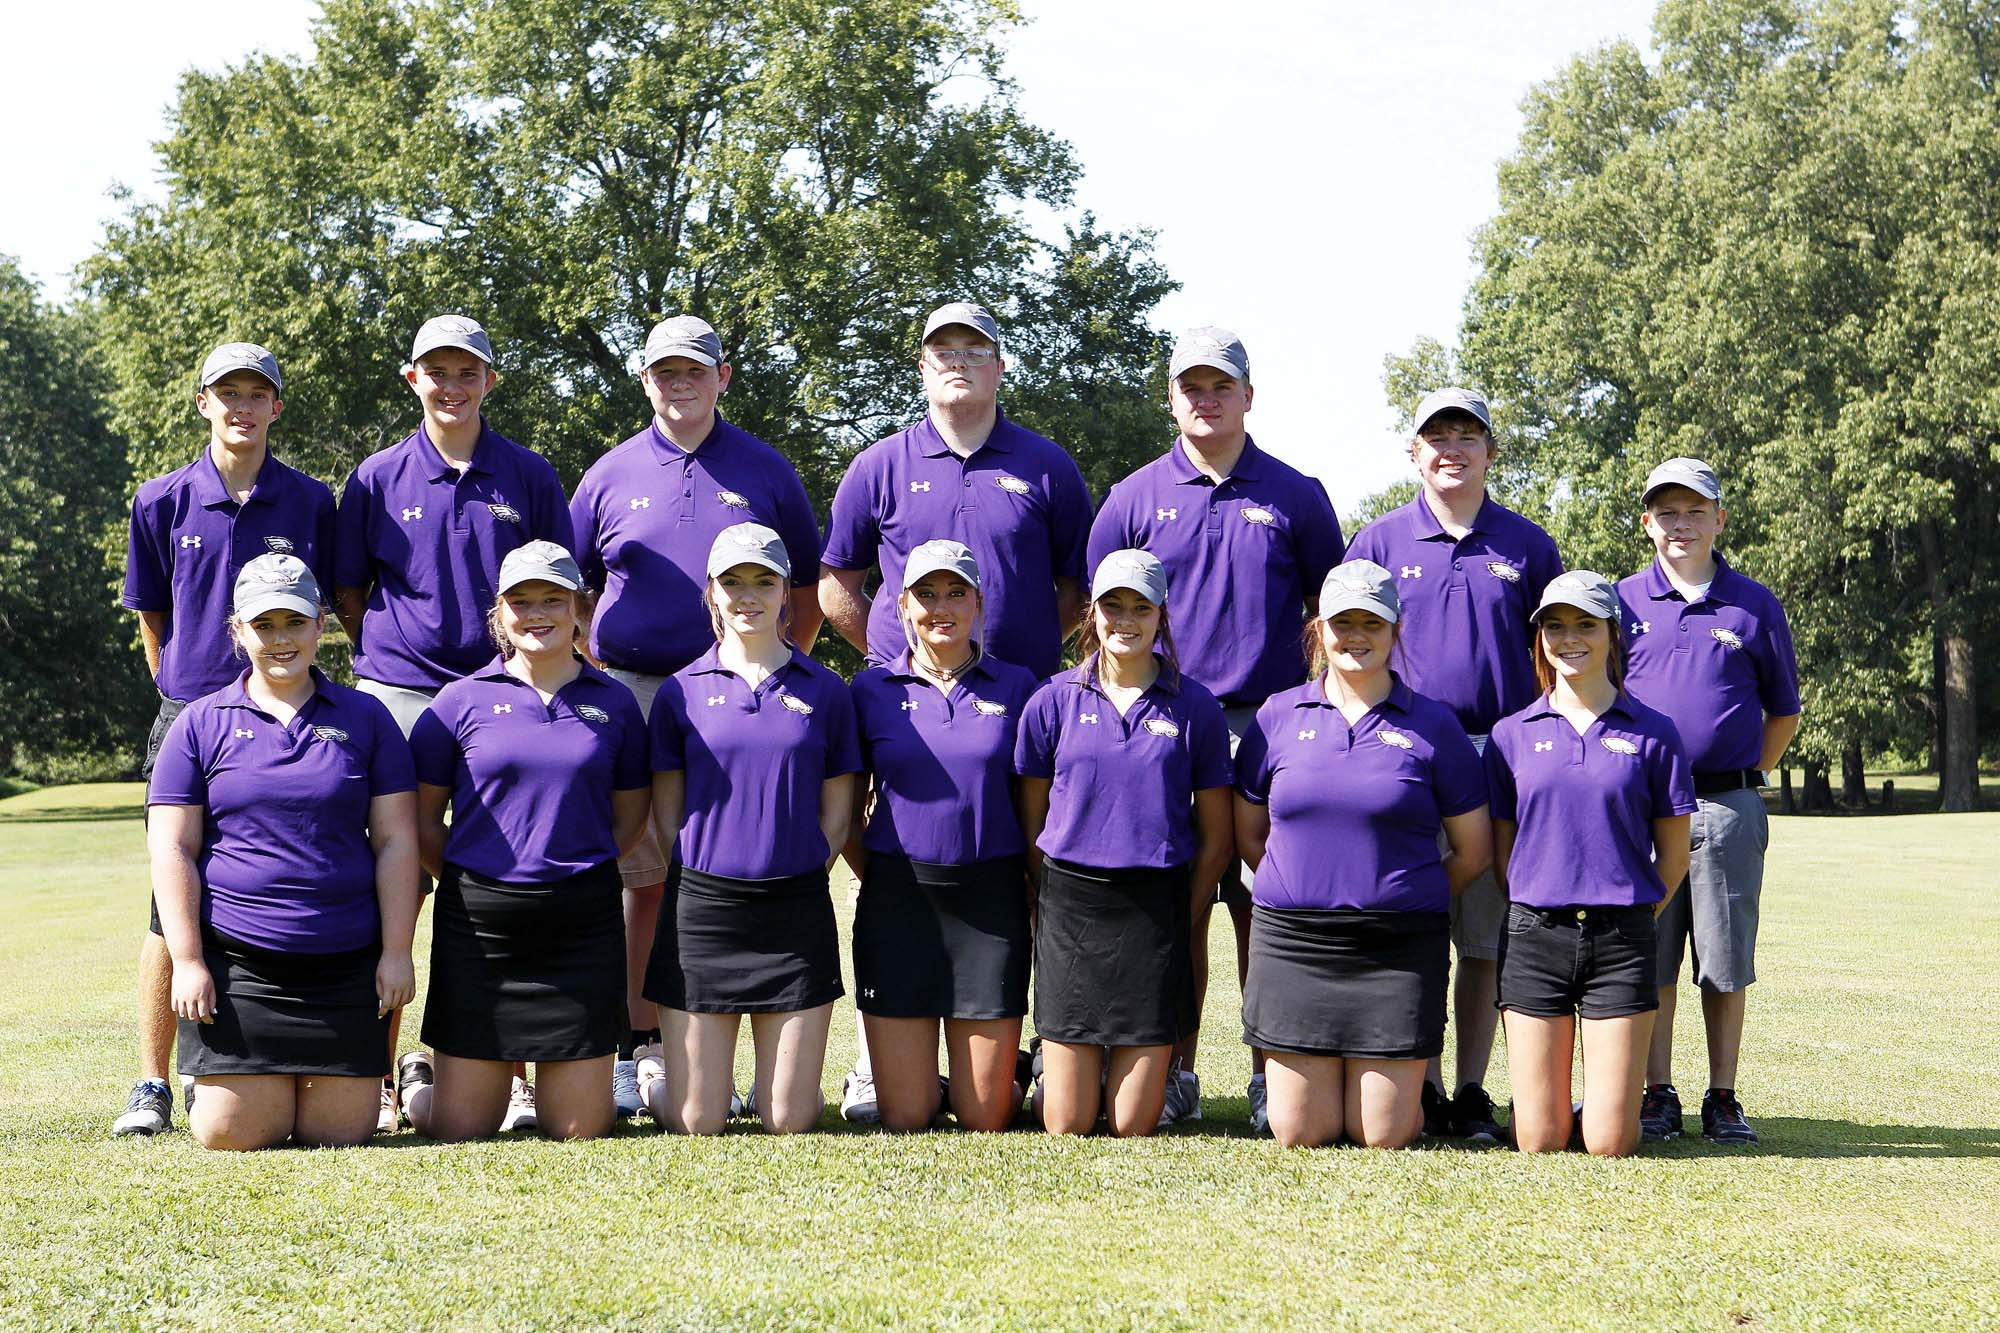 Members of the Eldorado High School girls golf team. Front row, from left, Gracie Harrawood, Lacey Hobbs, Derian Corn, Keeley Tate, Chloe Hopkins and Ashlyn Sizemore. Back row, from left, Evan Coyle, Braden Unthank, Zachary Stanford, Lucas Rider, Noah Smith, Ely Boulds, Austin Willis. Not pictured are Hannah Clark and Kaiden Lloyd.